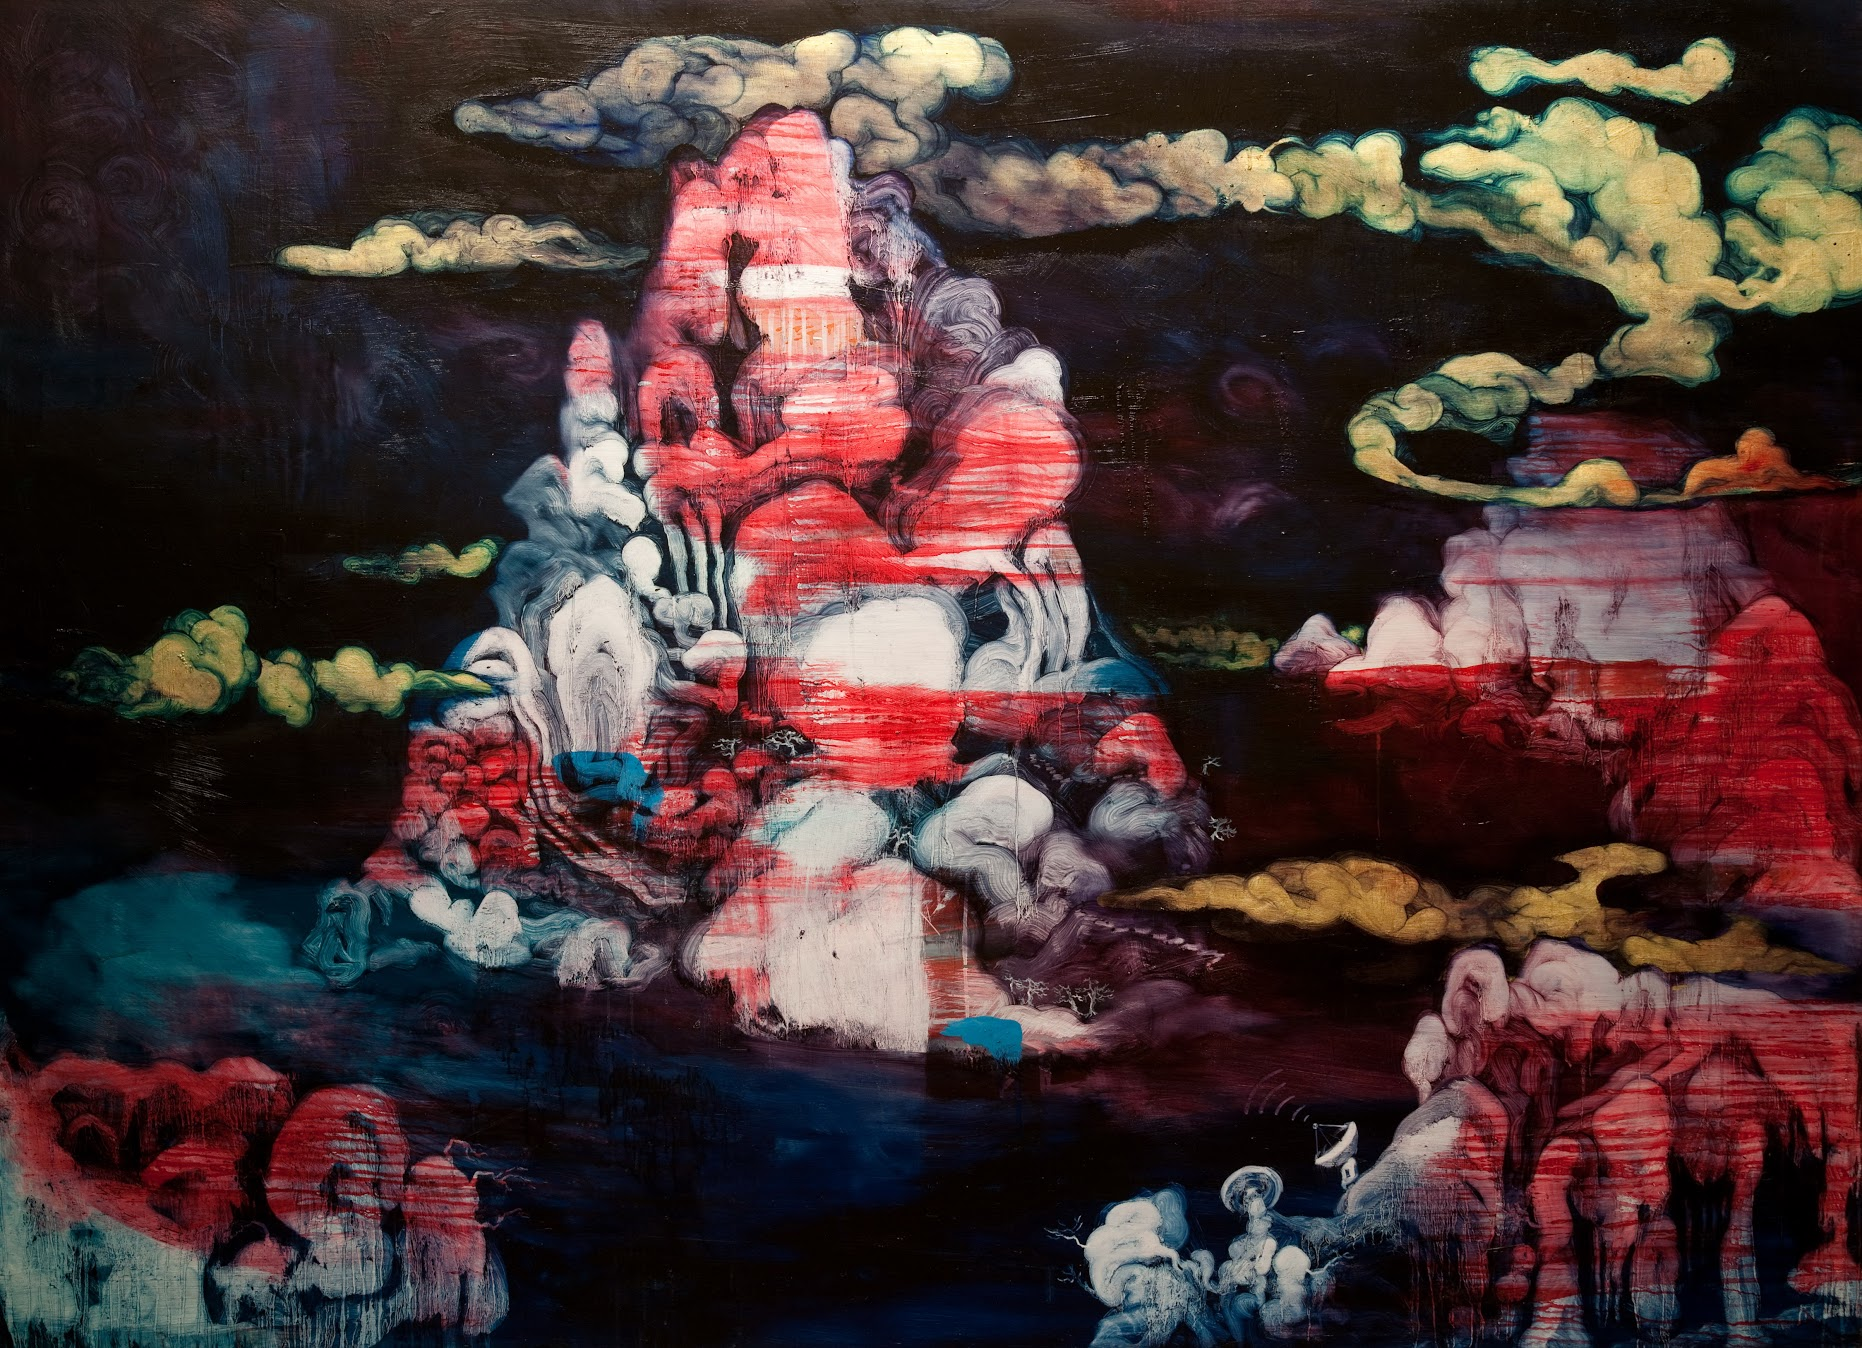 Chang-Ling,from  The Pork Belly Series: Flesh Landscape ,  2009,  oil on canvas, 145 x 200   cm. © Courtesy of InSian Gallery